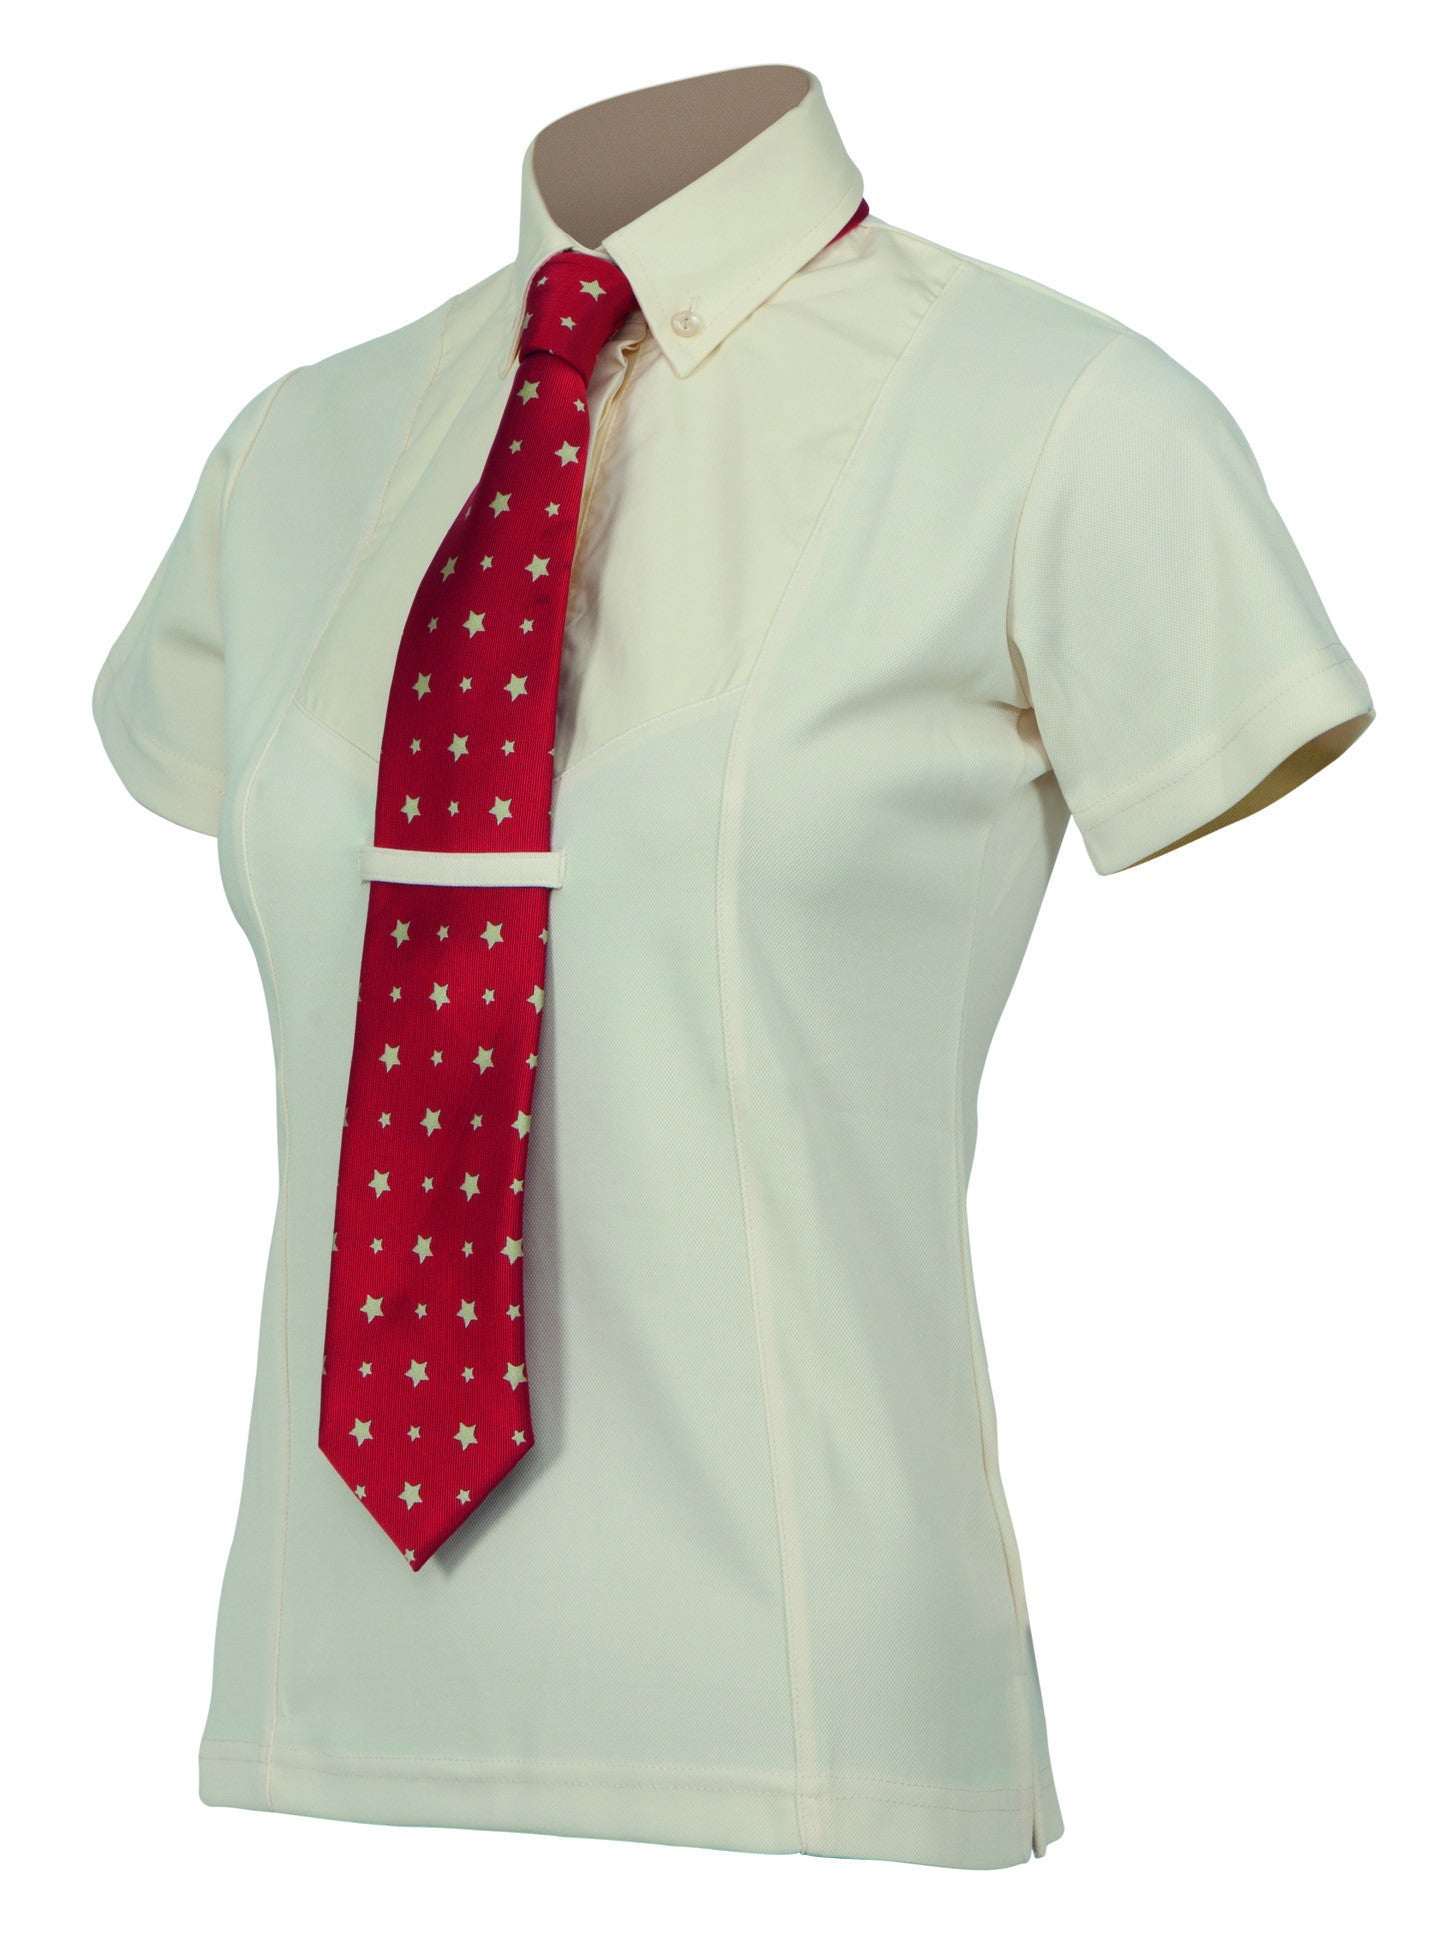 Shires Short Sleeve Tie Shirt - Children's